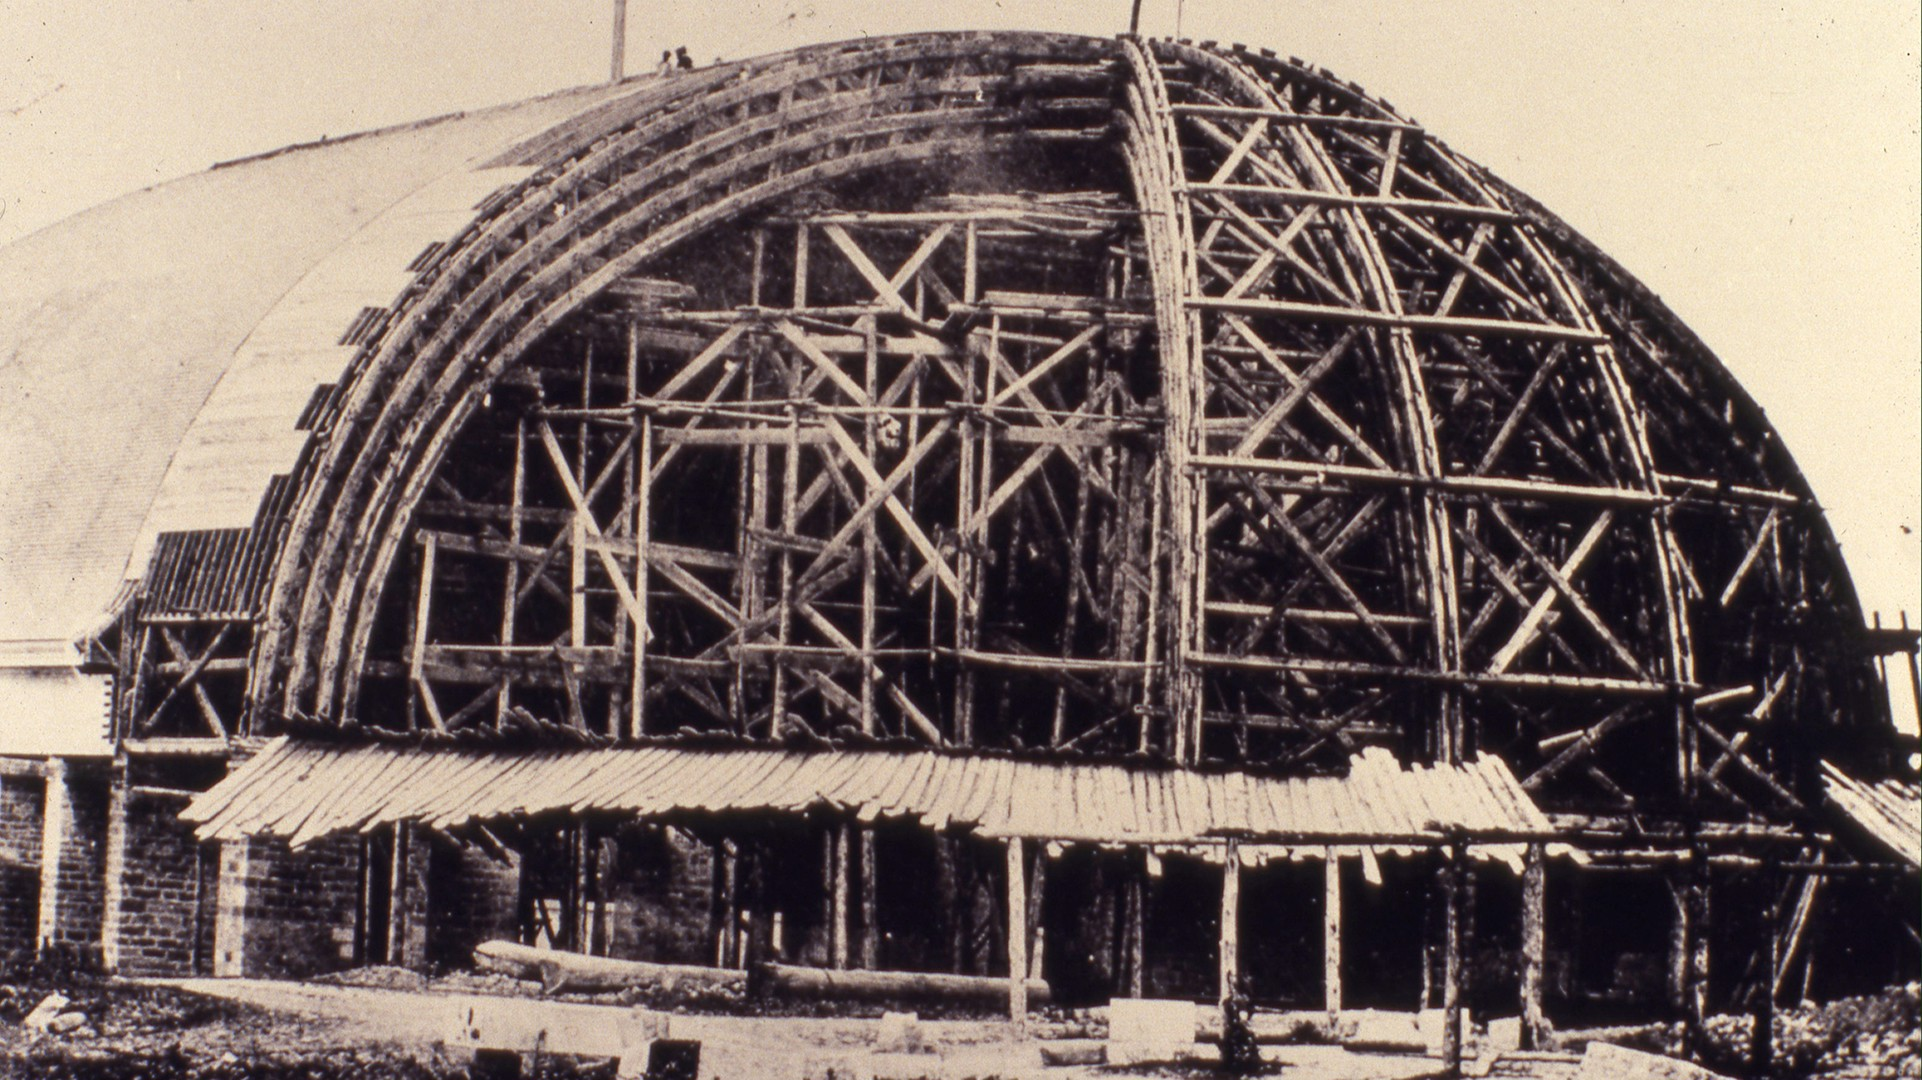 The Salt Lake Tabernacle is almost 150 years old and is still used today. It is the home of the Mormon Tabernacle Choir. Watch this video to take a tour of the Tabernacle's attic.